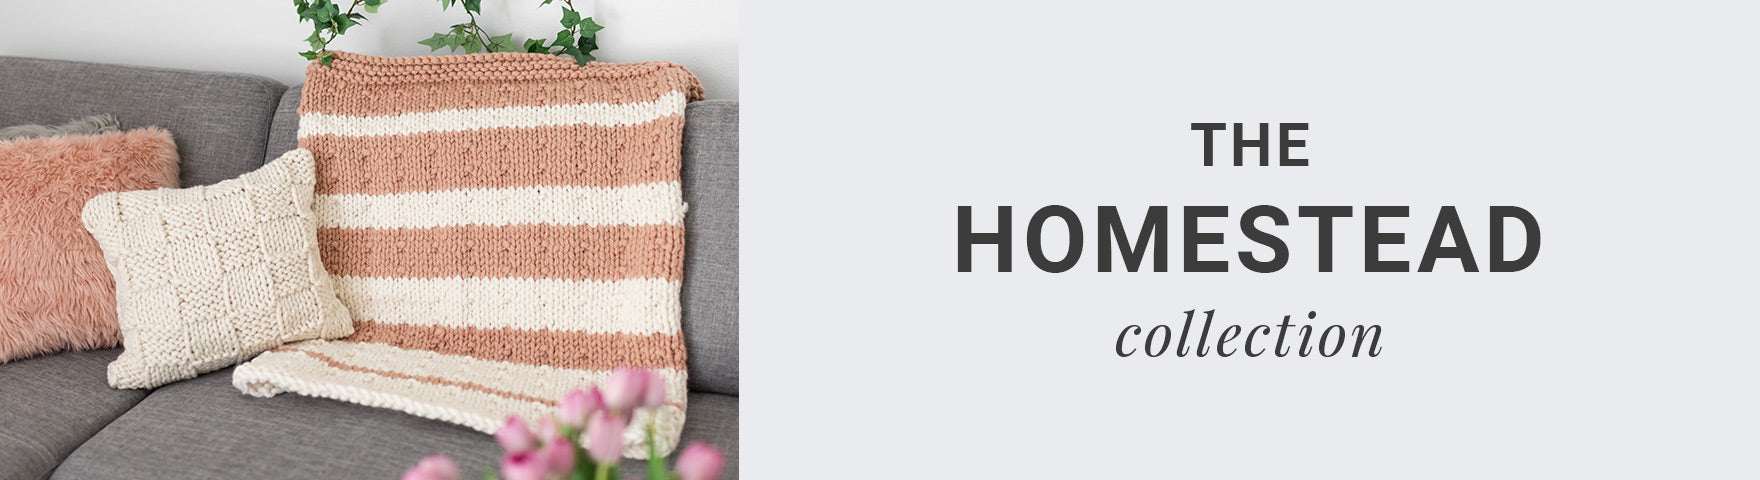 Homestead Collection | Stitch & Story